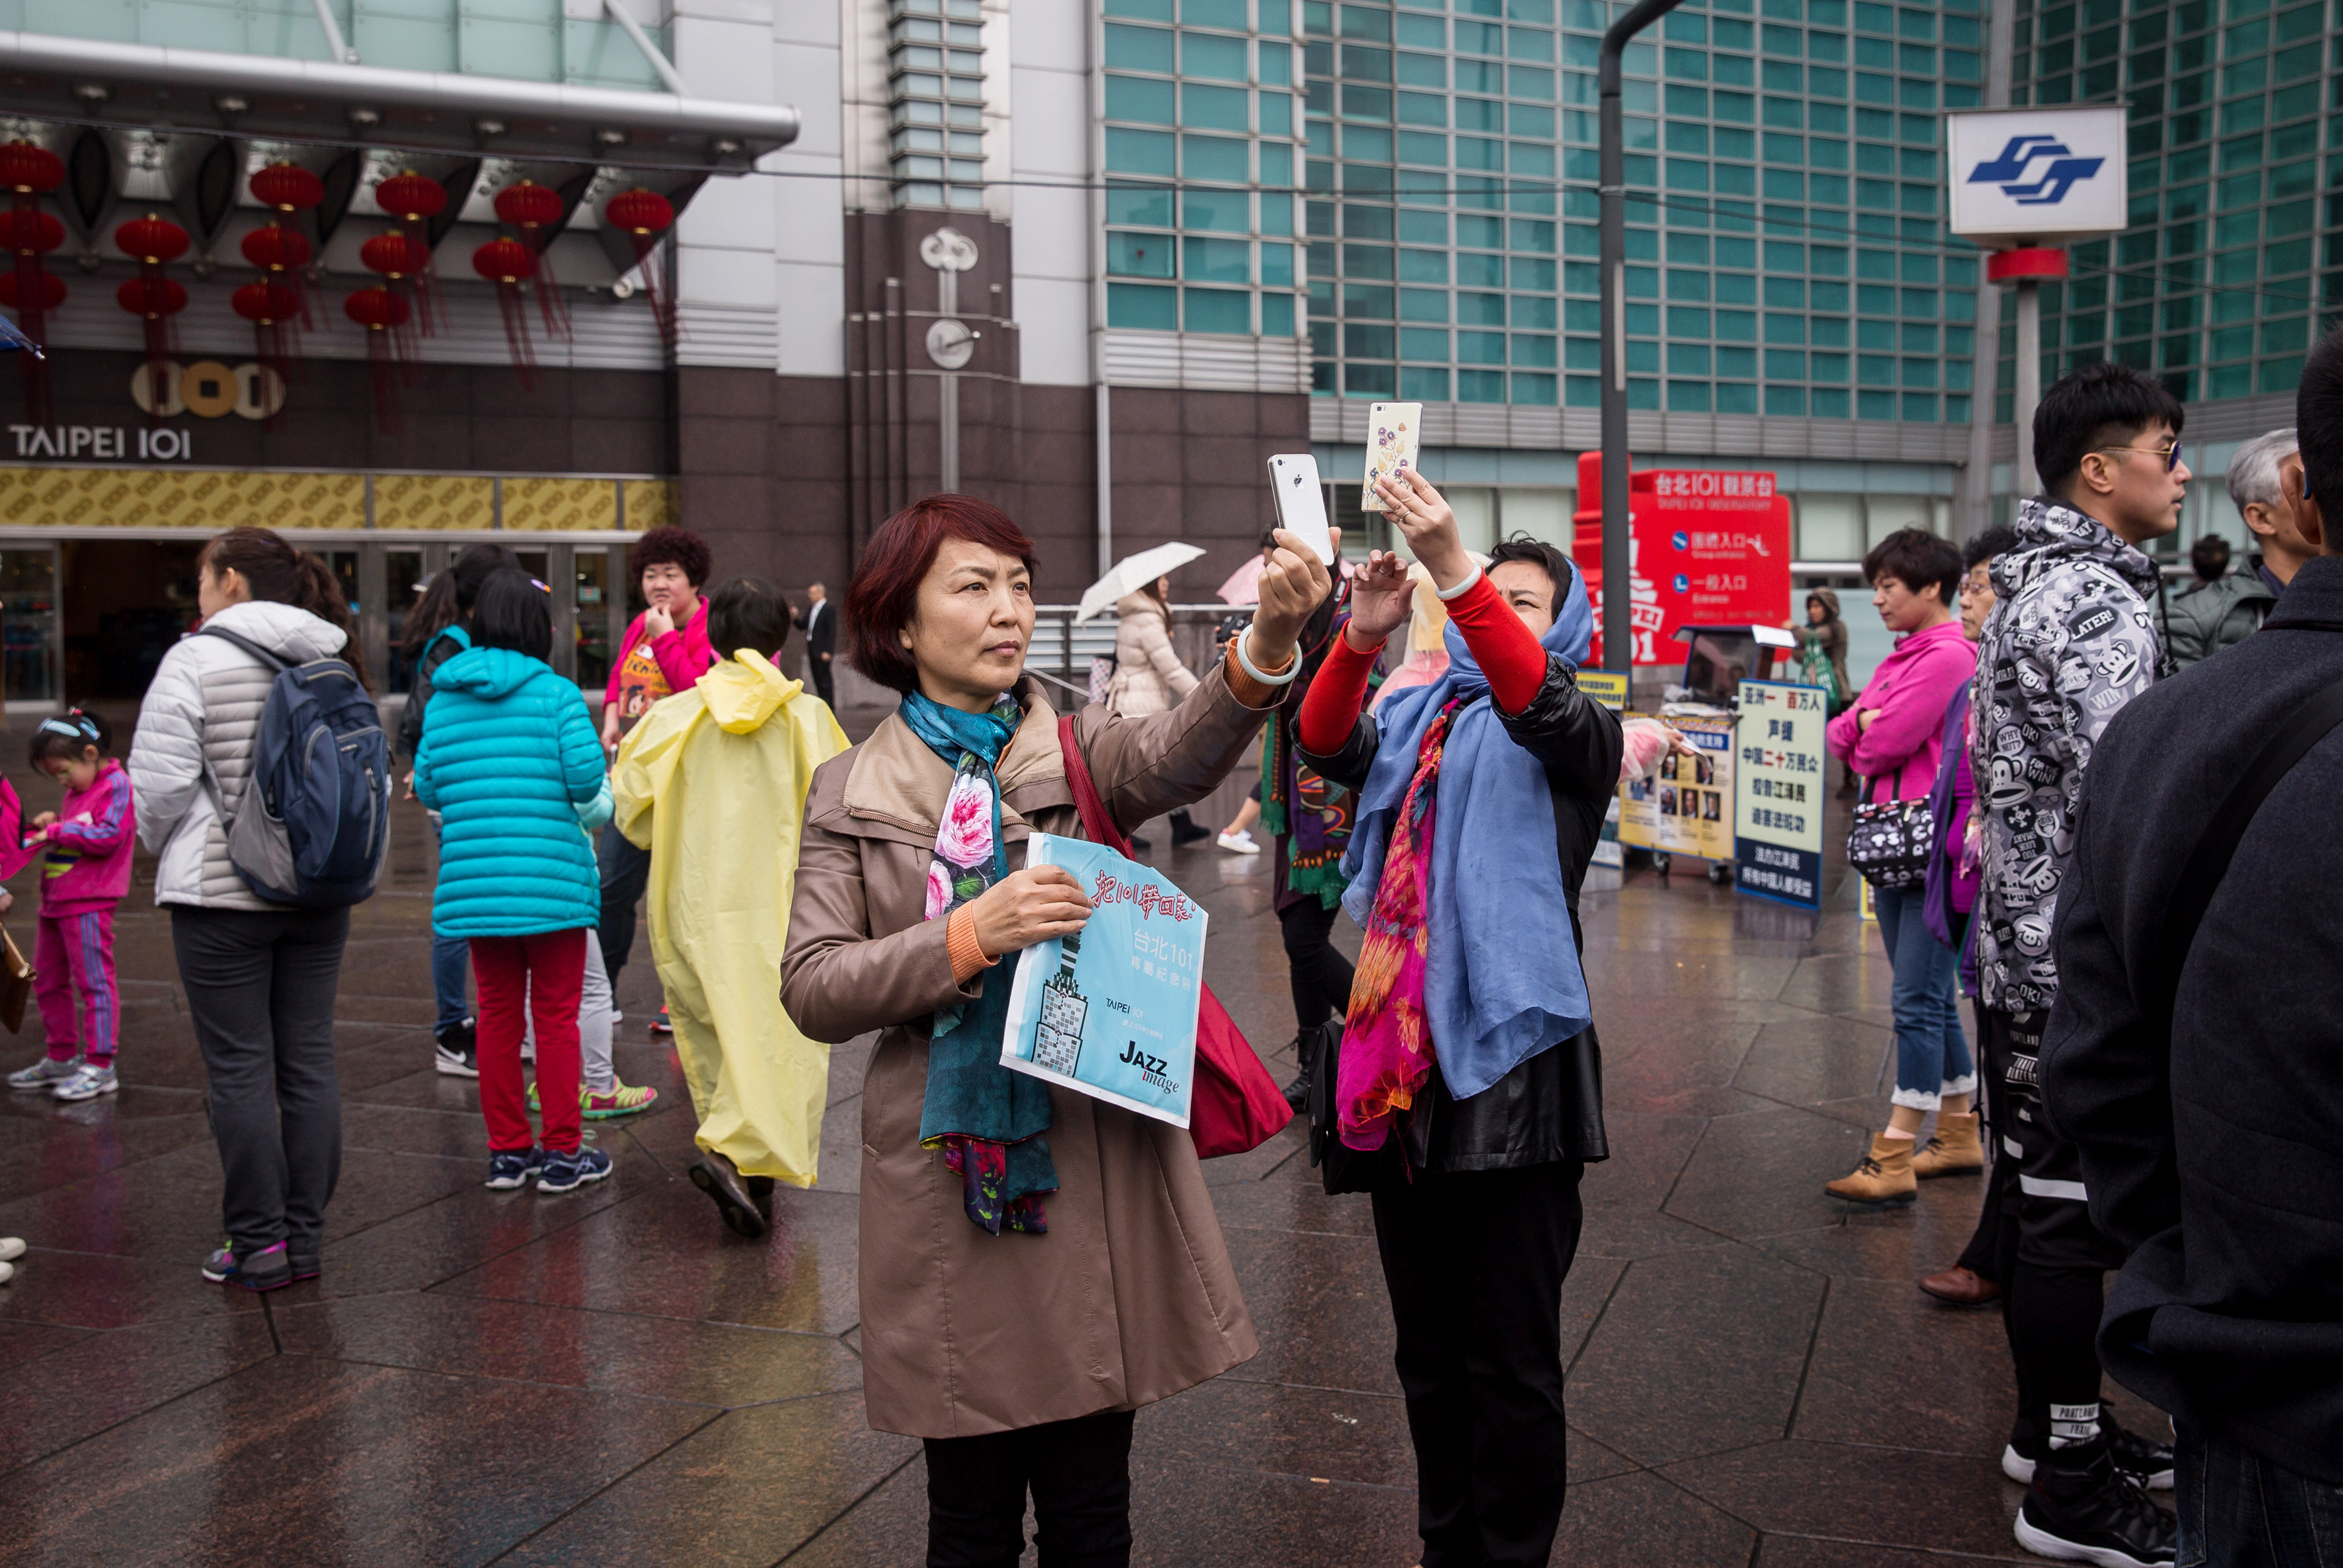 Tourists take photographs using smartphones outside the Taipei 101 building in Taipei on Jan. 13, 2016